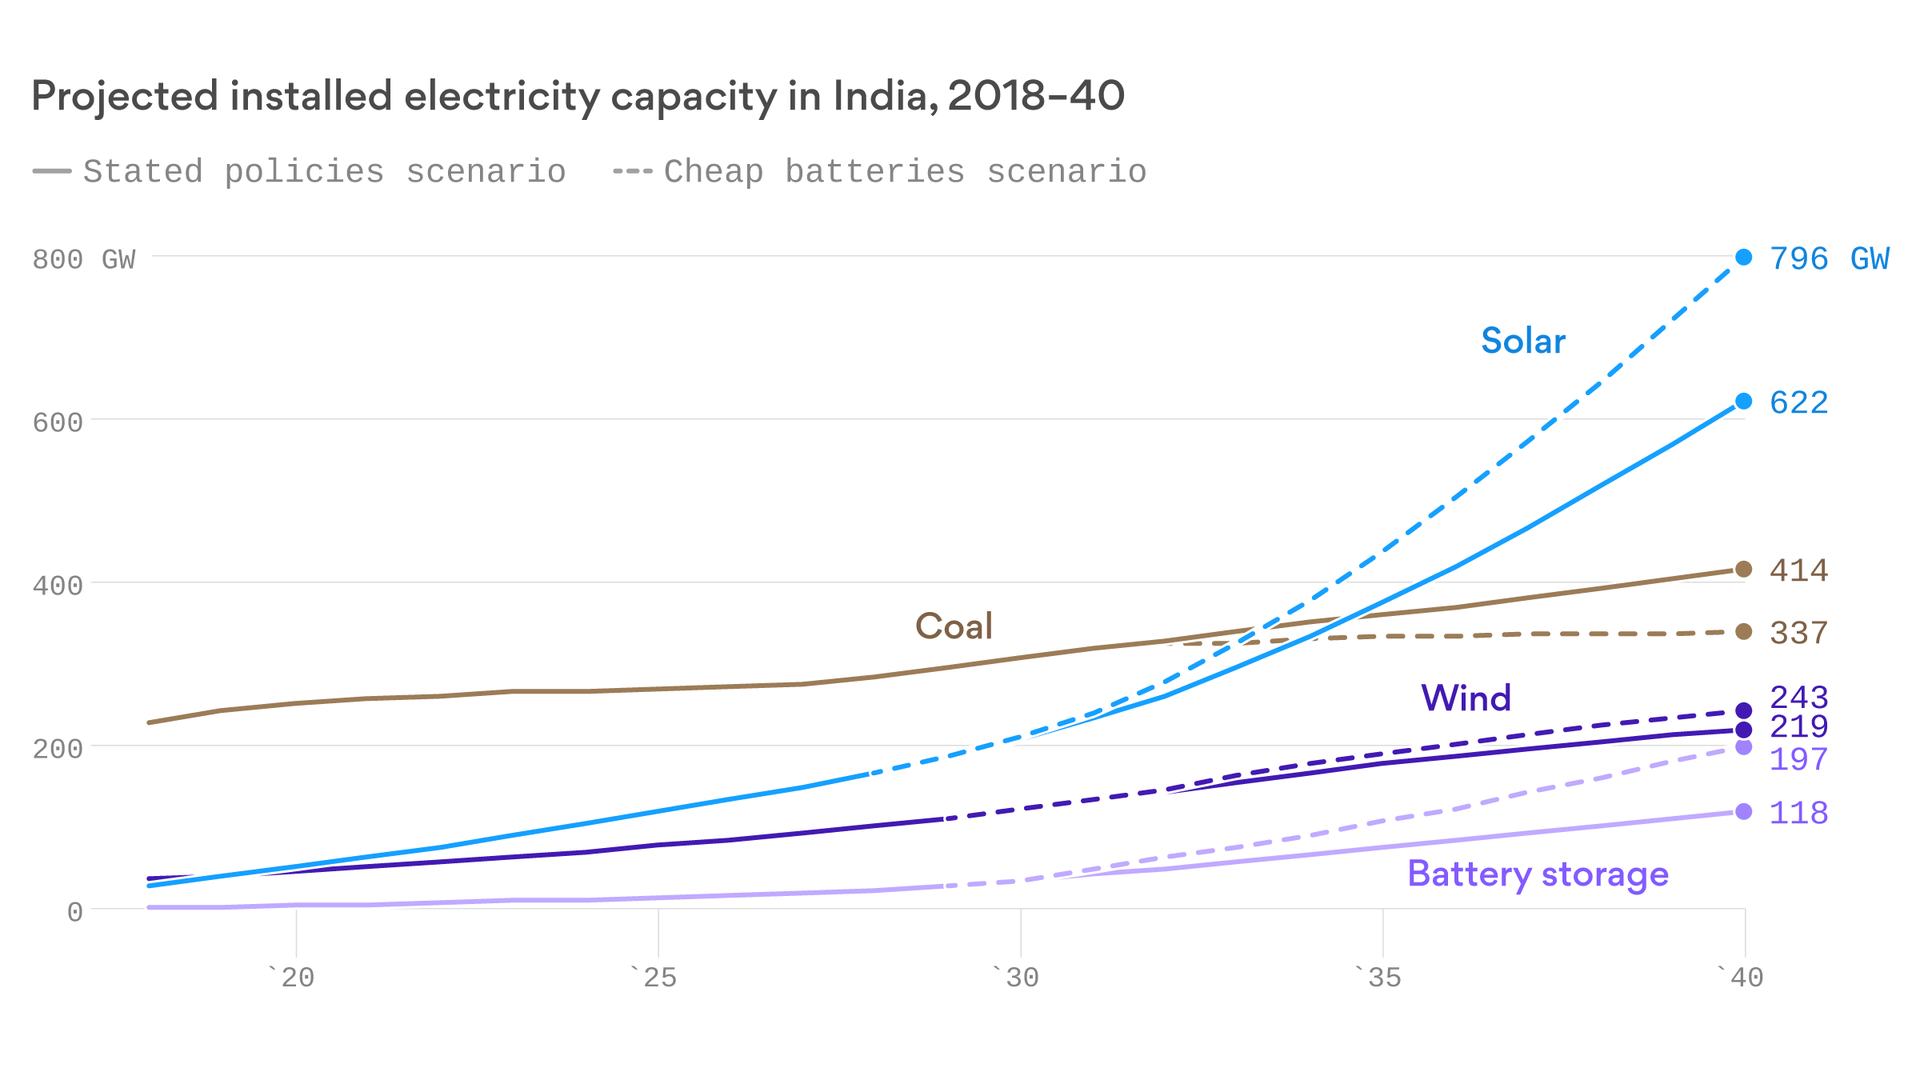 Why India needs cheap batteries